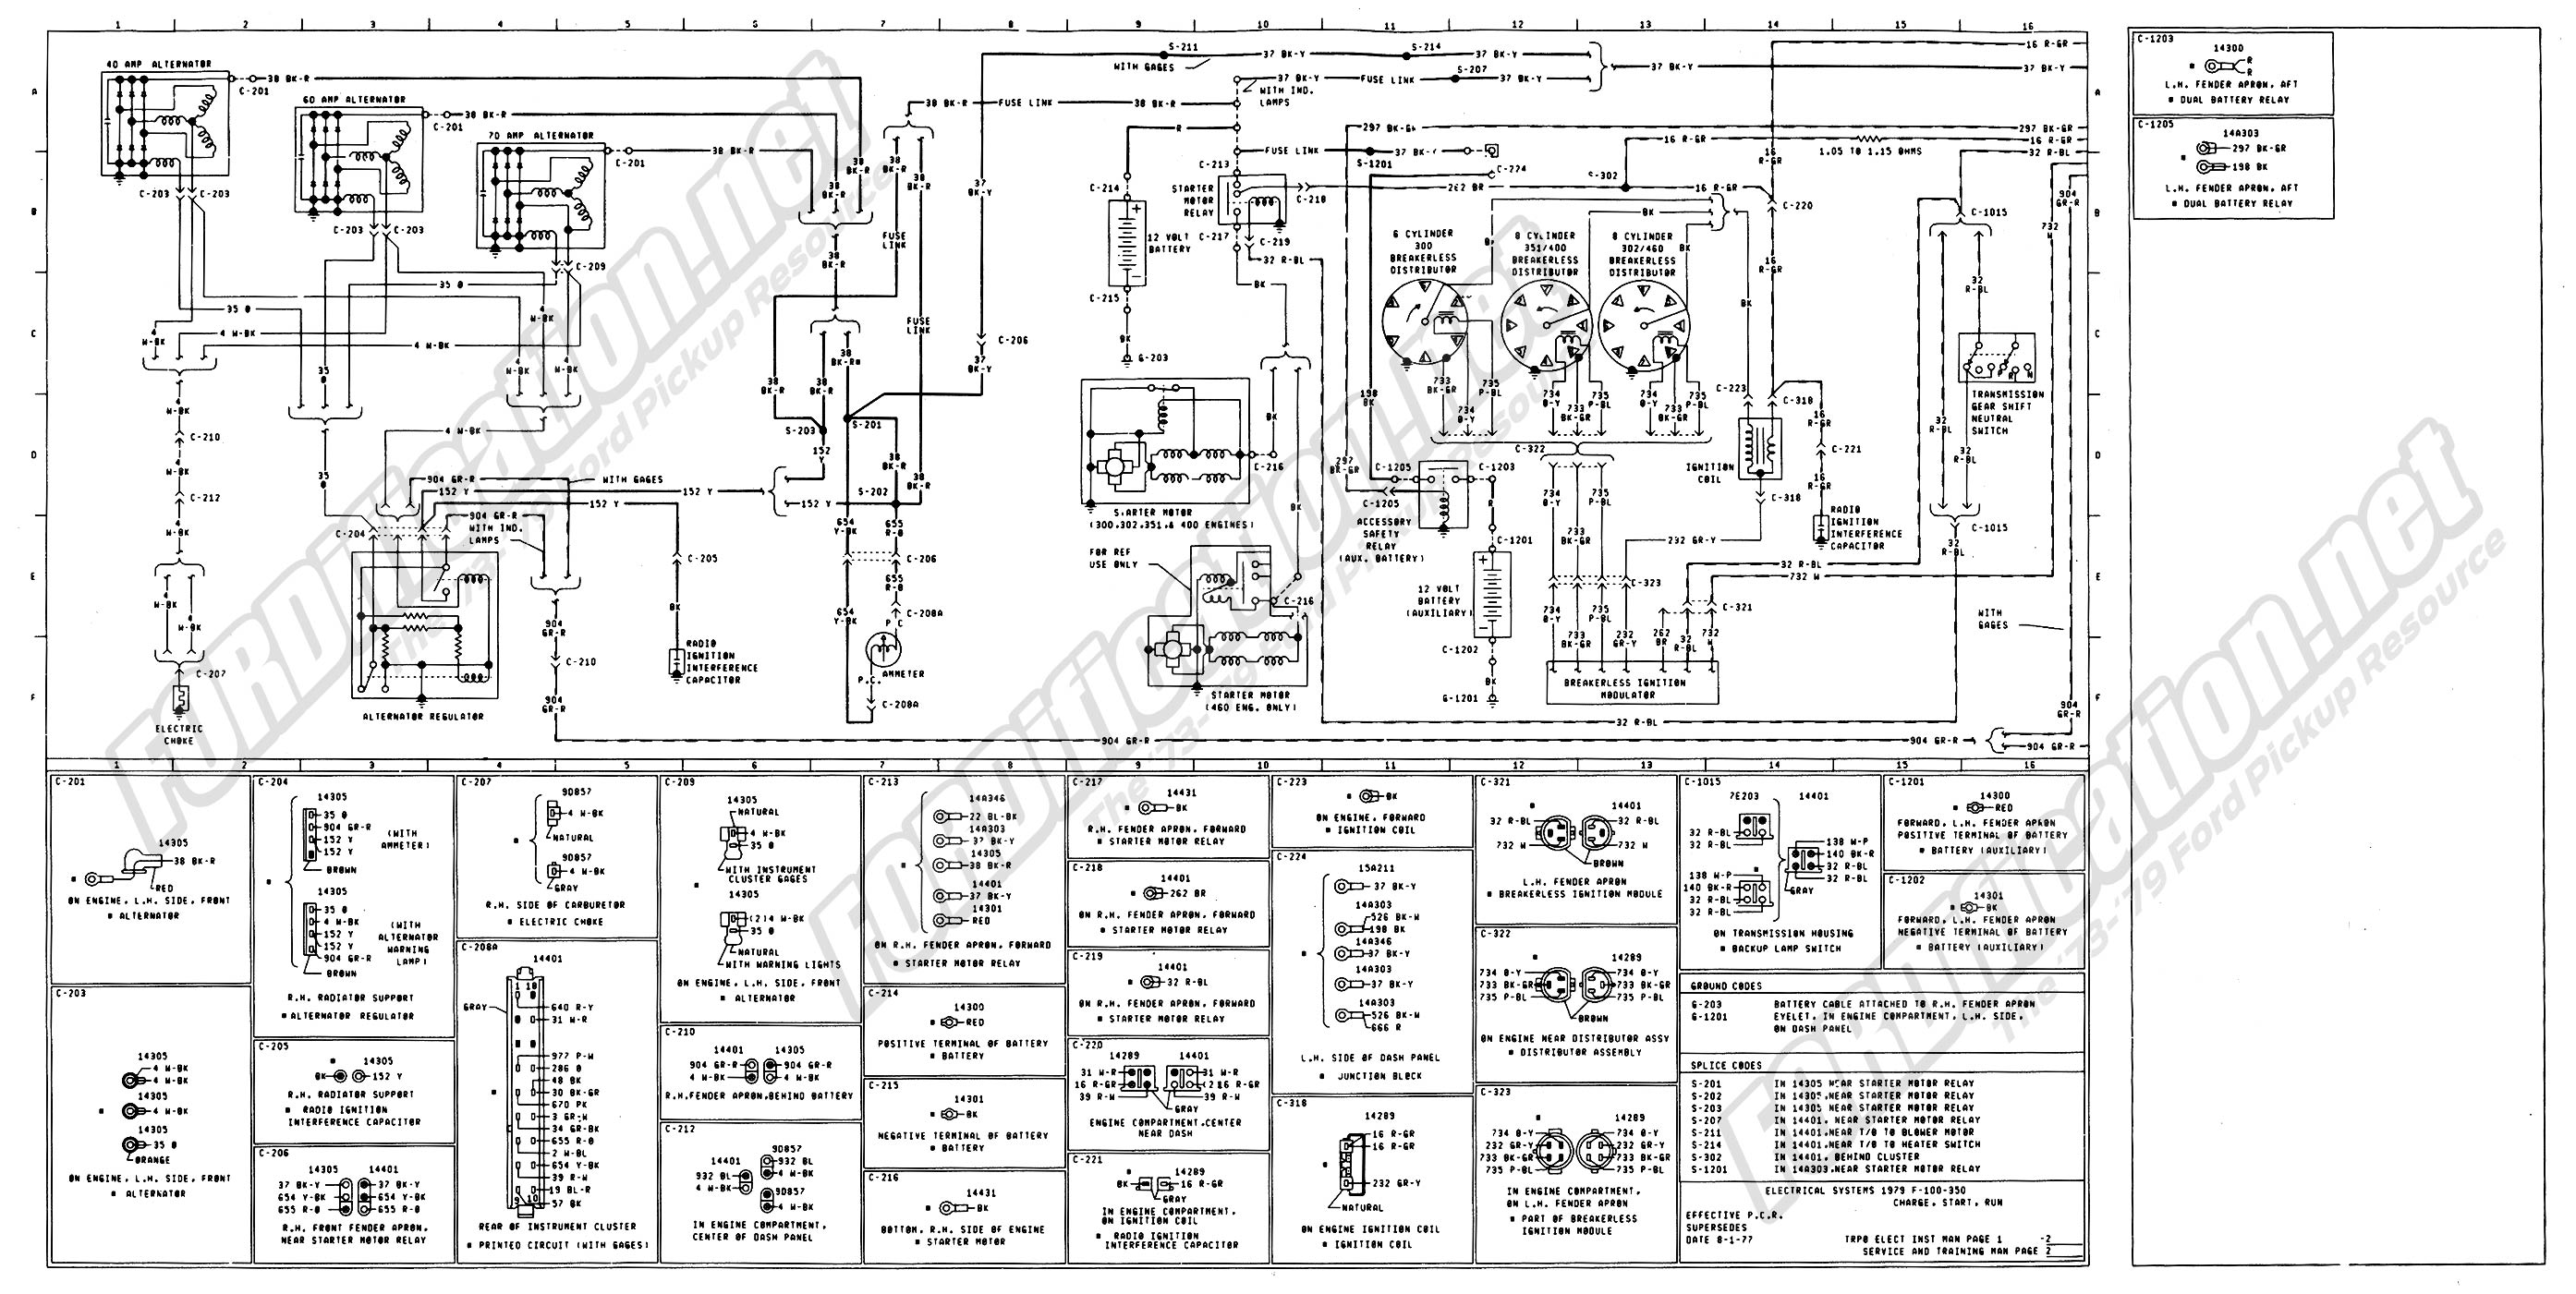 wiring_79master_2of9 1973 1979 ford truck wiring diagrams & schematics fordification net GM Windshield Wiper Wiring Diagram at fashall.co